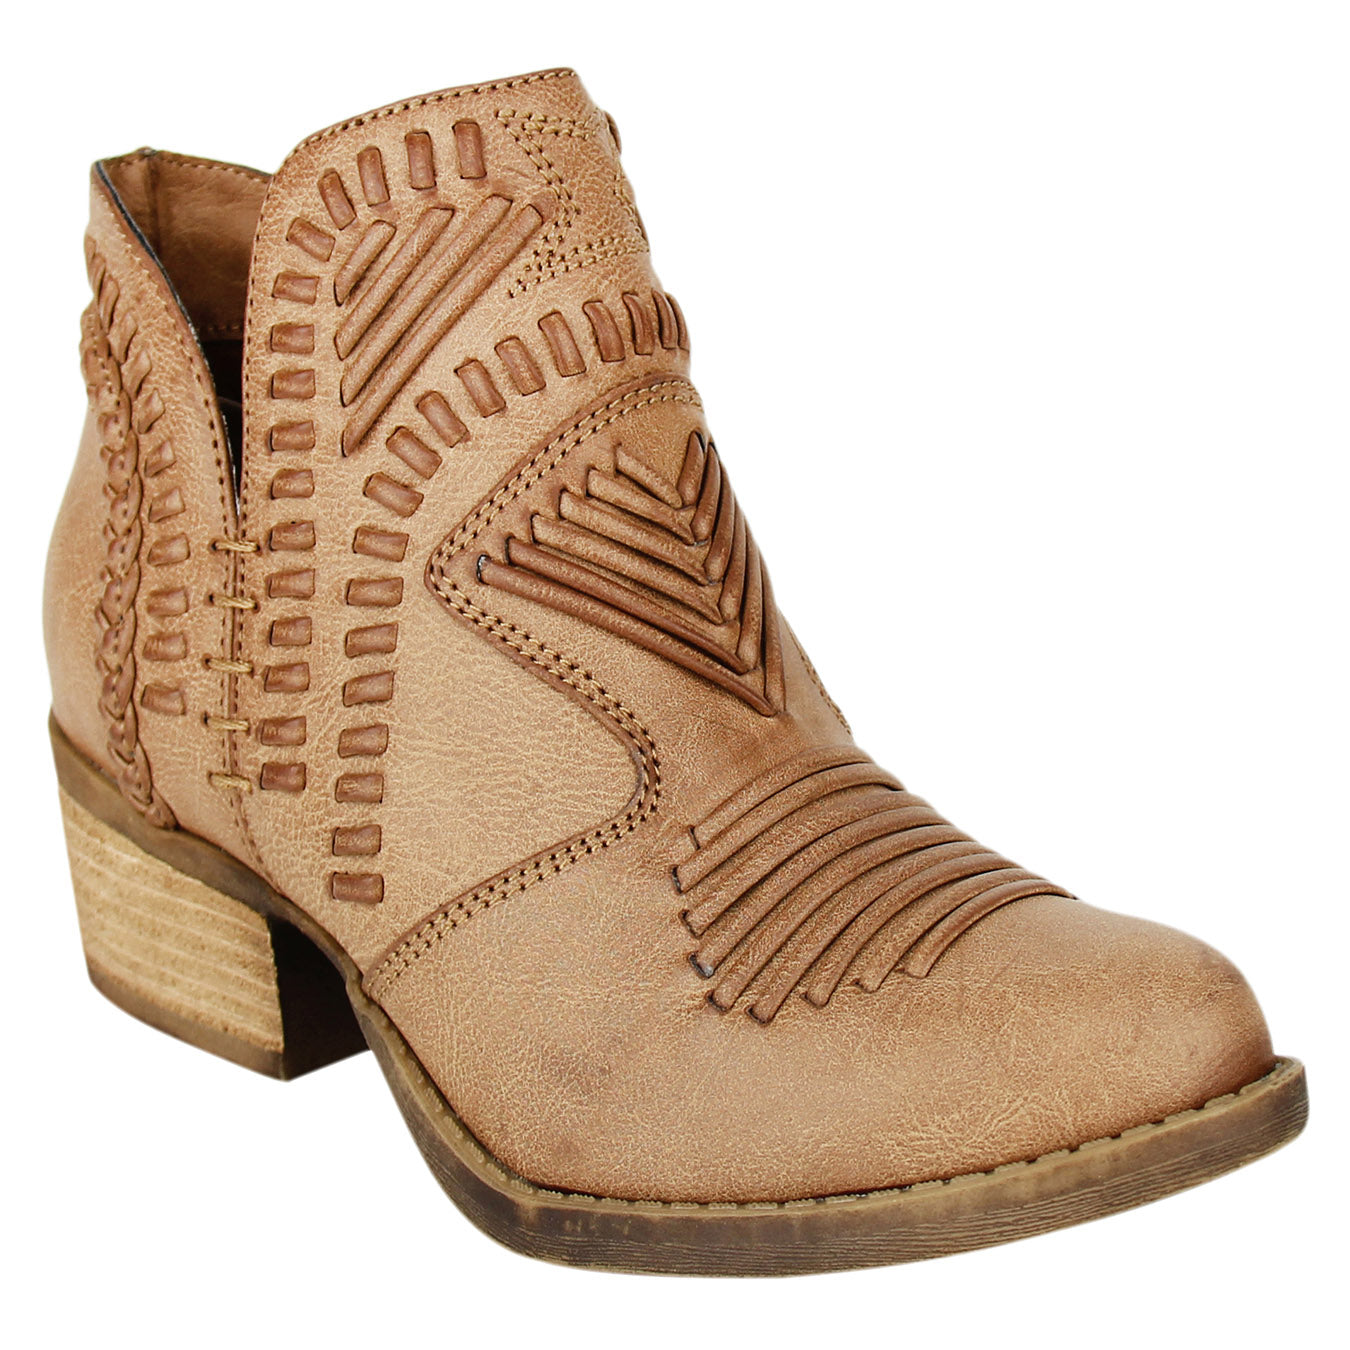 Not_Rated_booties_tan_stacked-heel_woven_upper_women's_best_seller